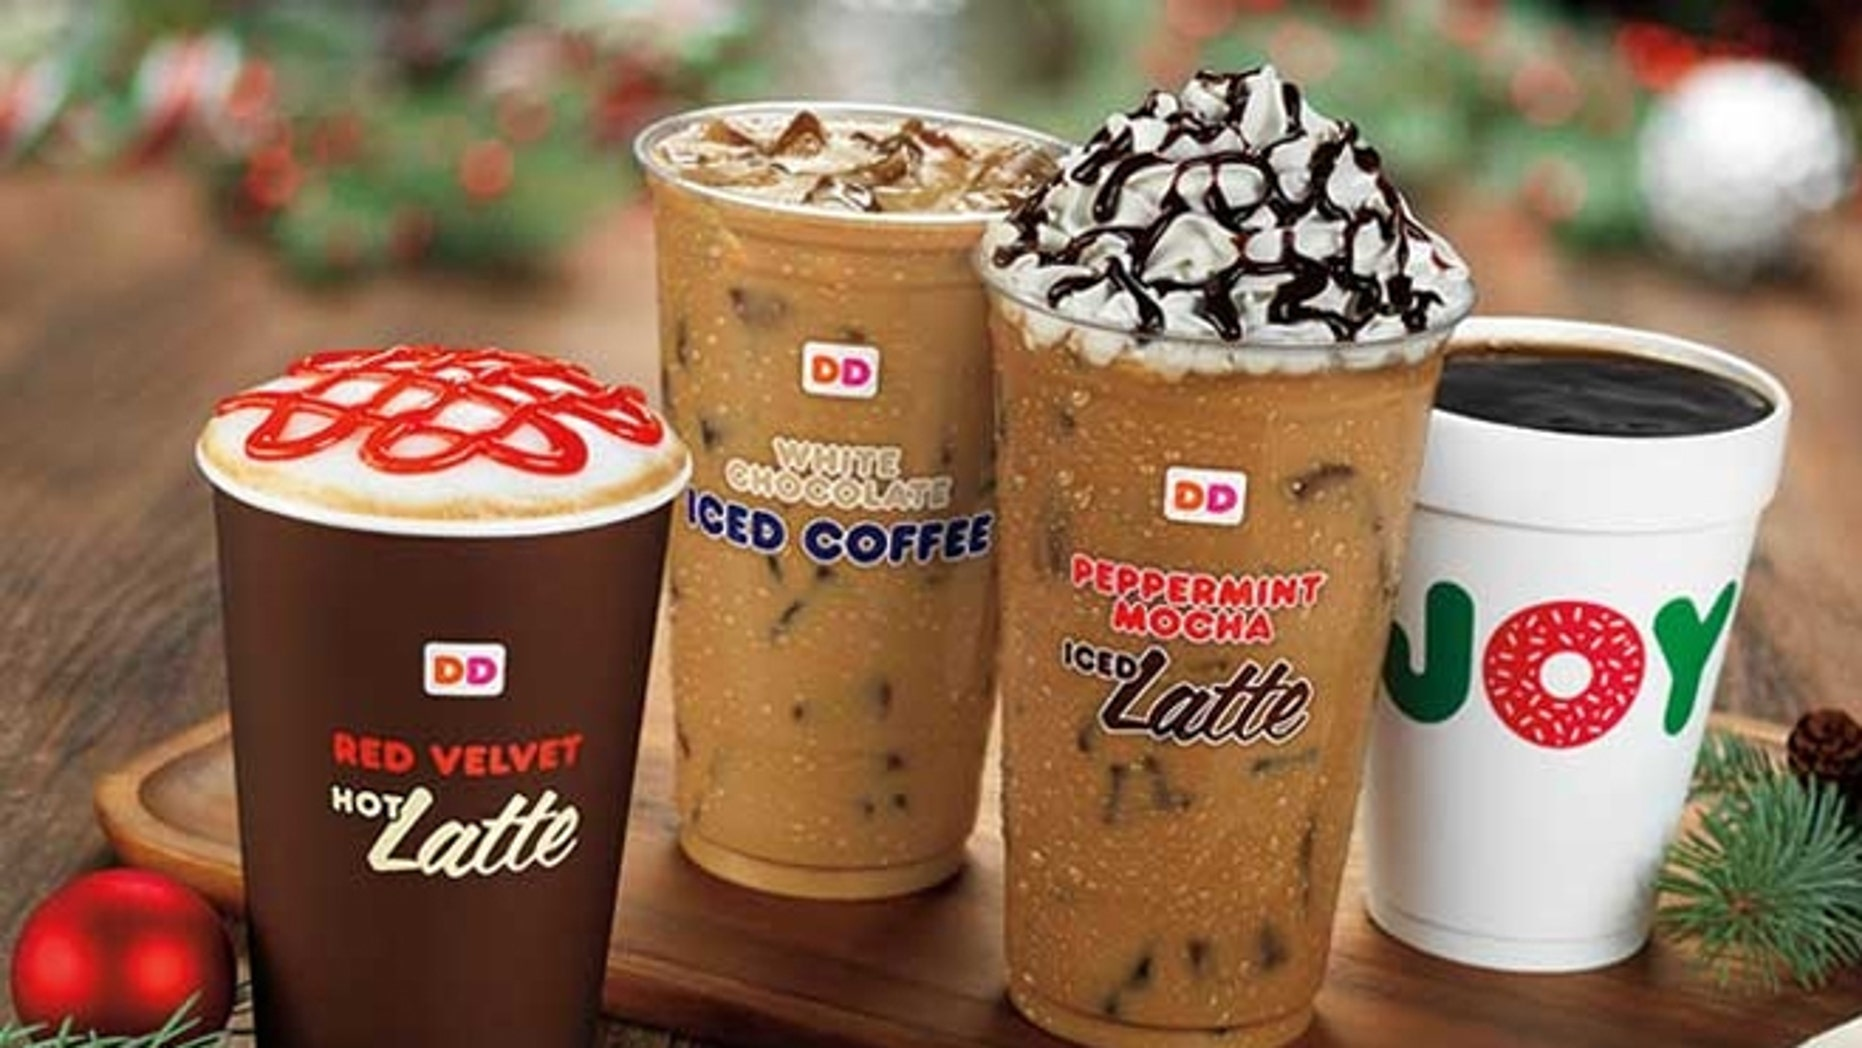 Dunkin' Donuts will release two new seasonal drinks: Red Velvet Latte and Salted Caramel Hot Chocolate.